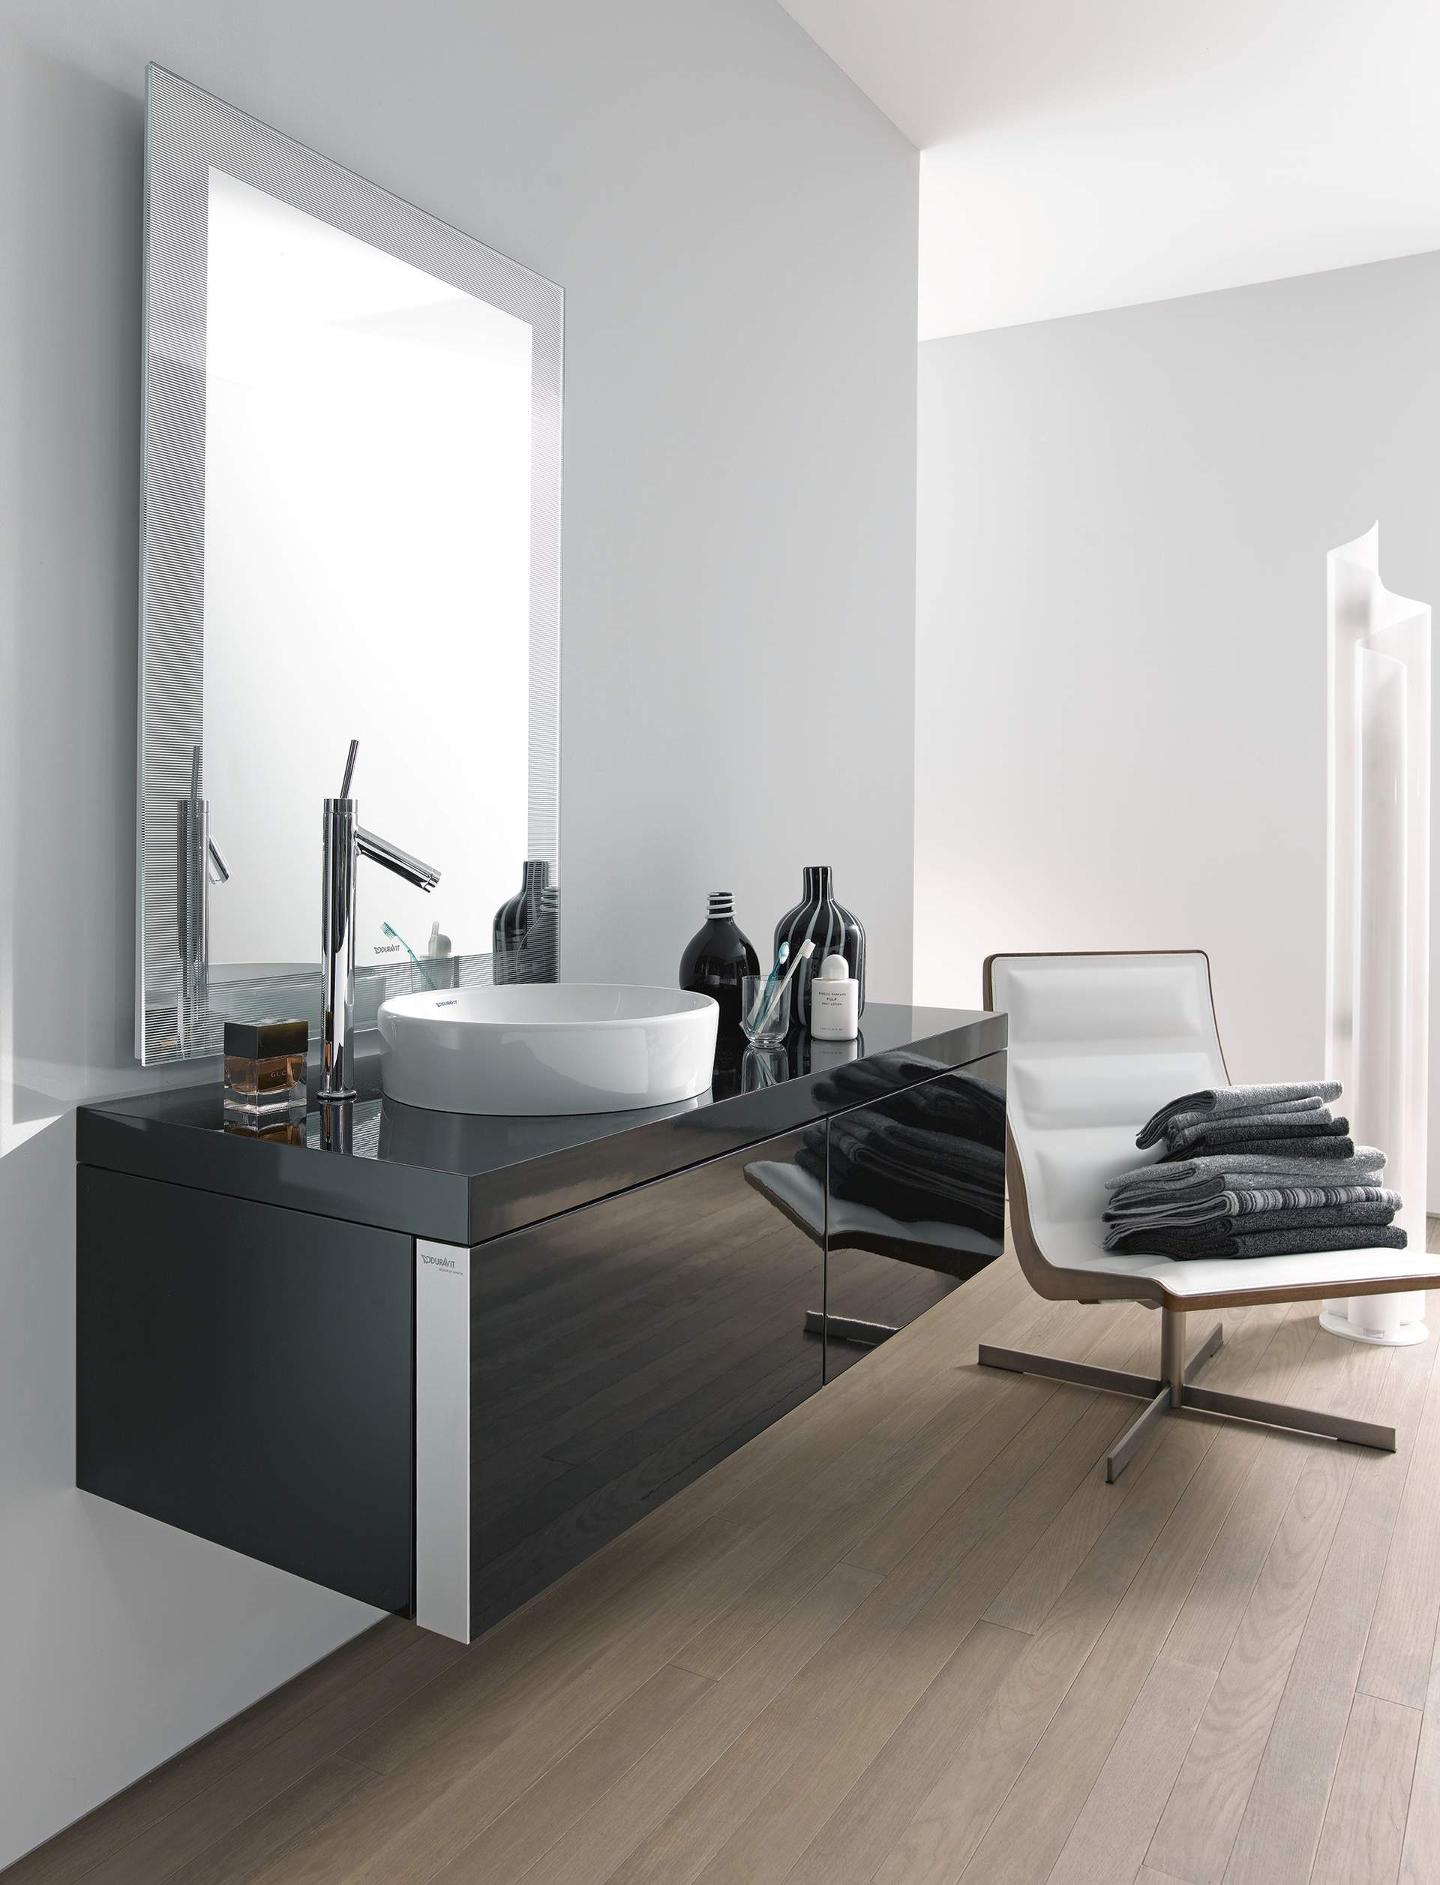 Starck Furniture Design Bathroom Furniture Duravit